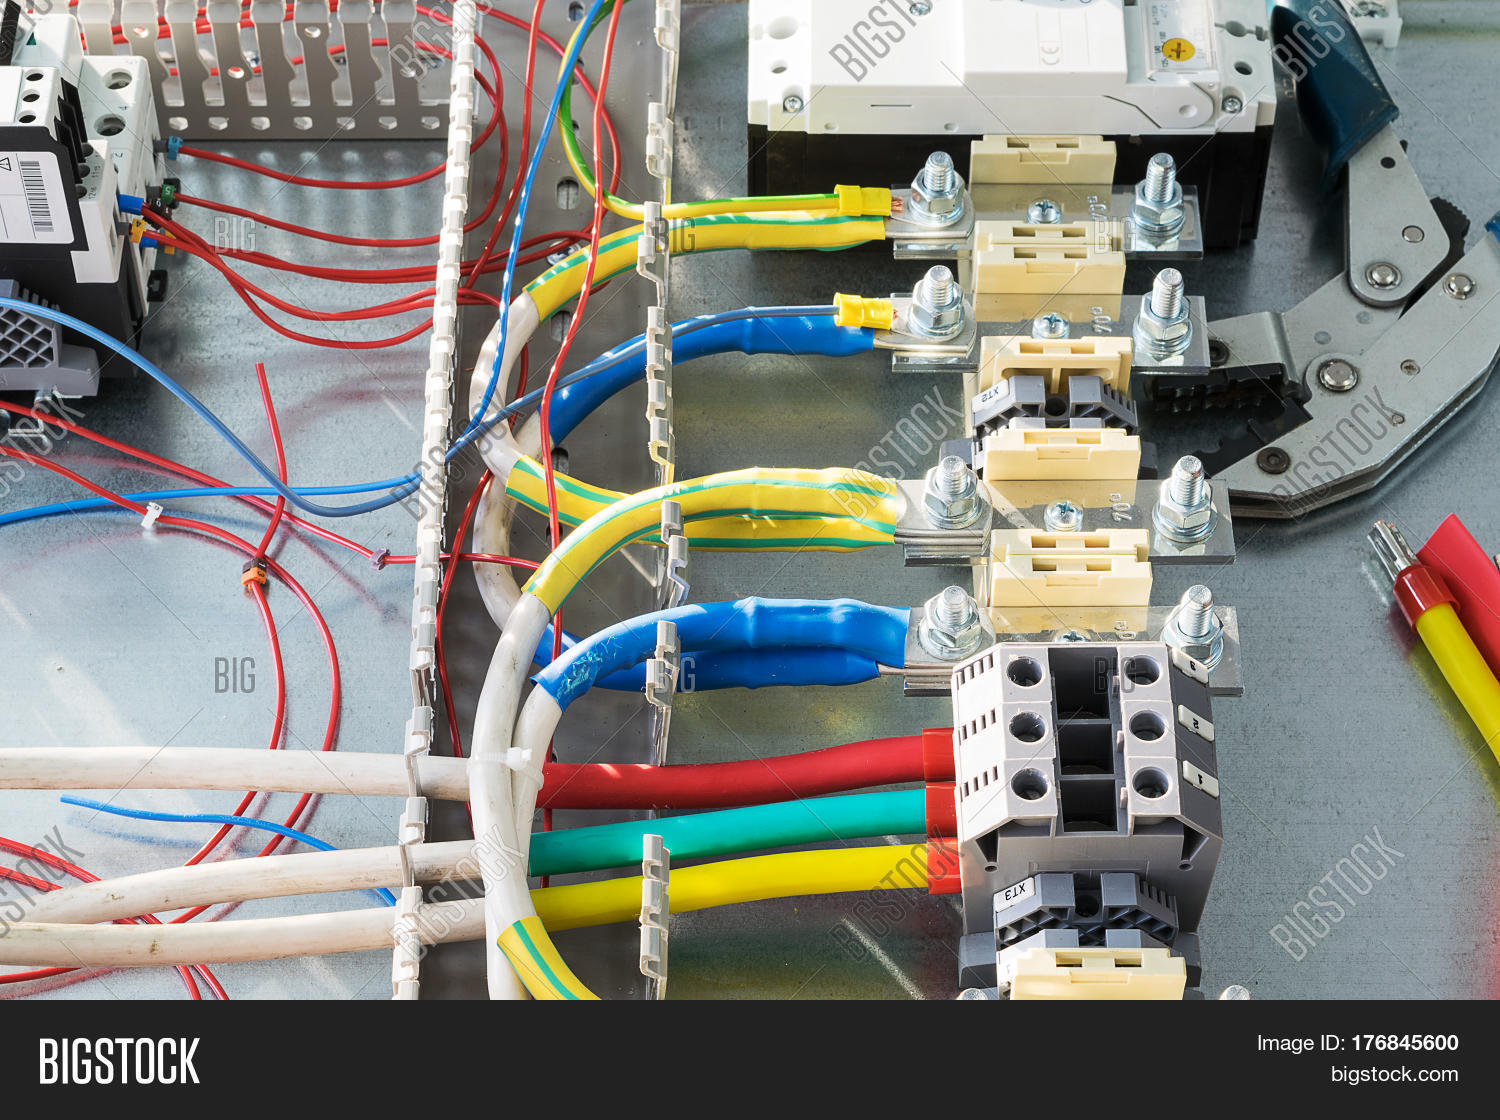 Enjoyable On Mounting Panel Image Photo Free Trial Bigstock Wiring Digital Resources Tziciprontobusorg